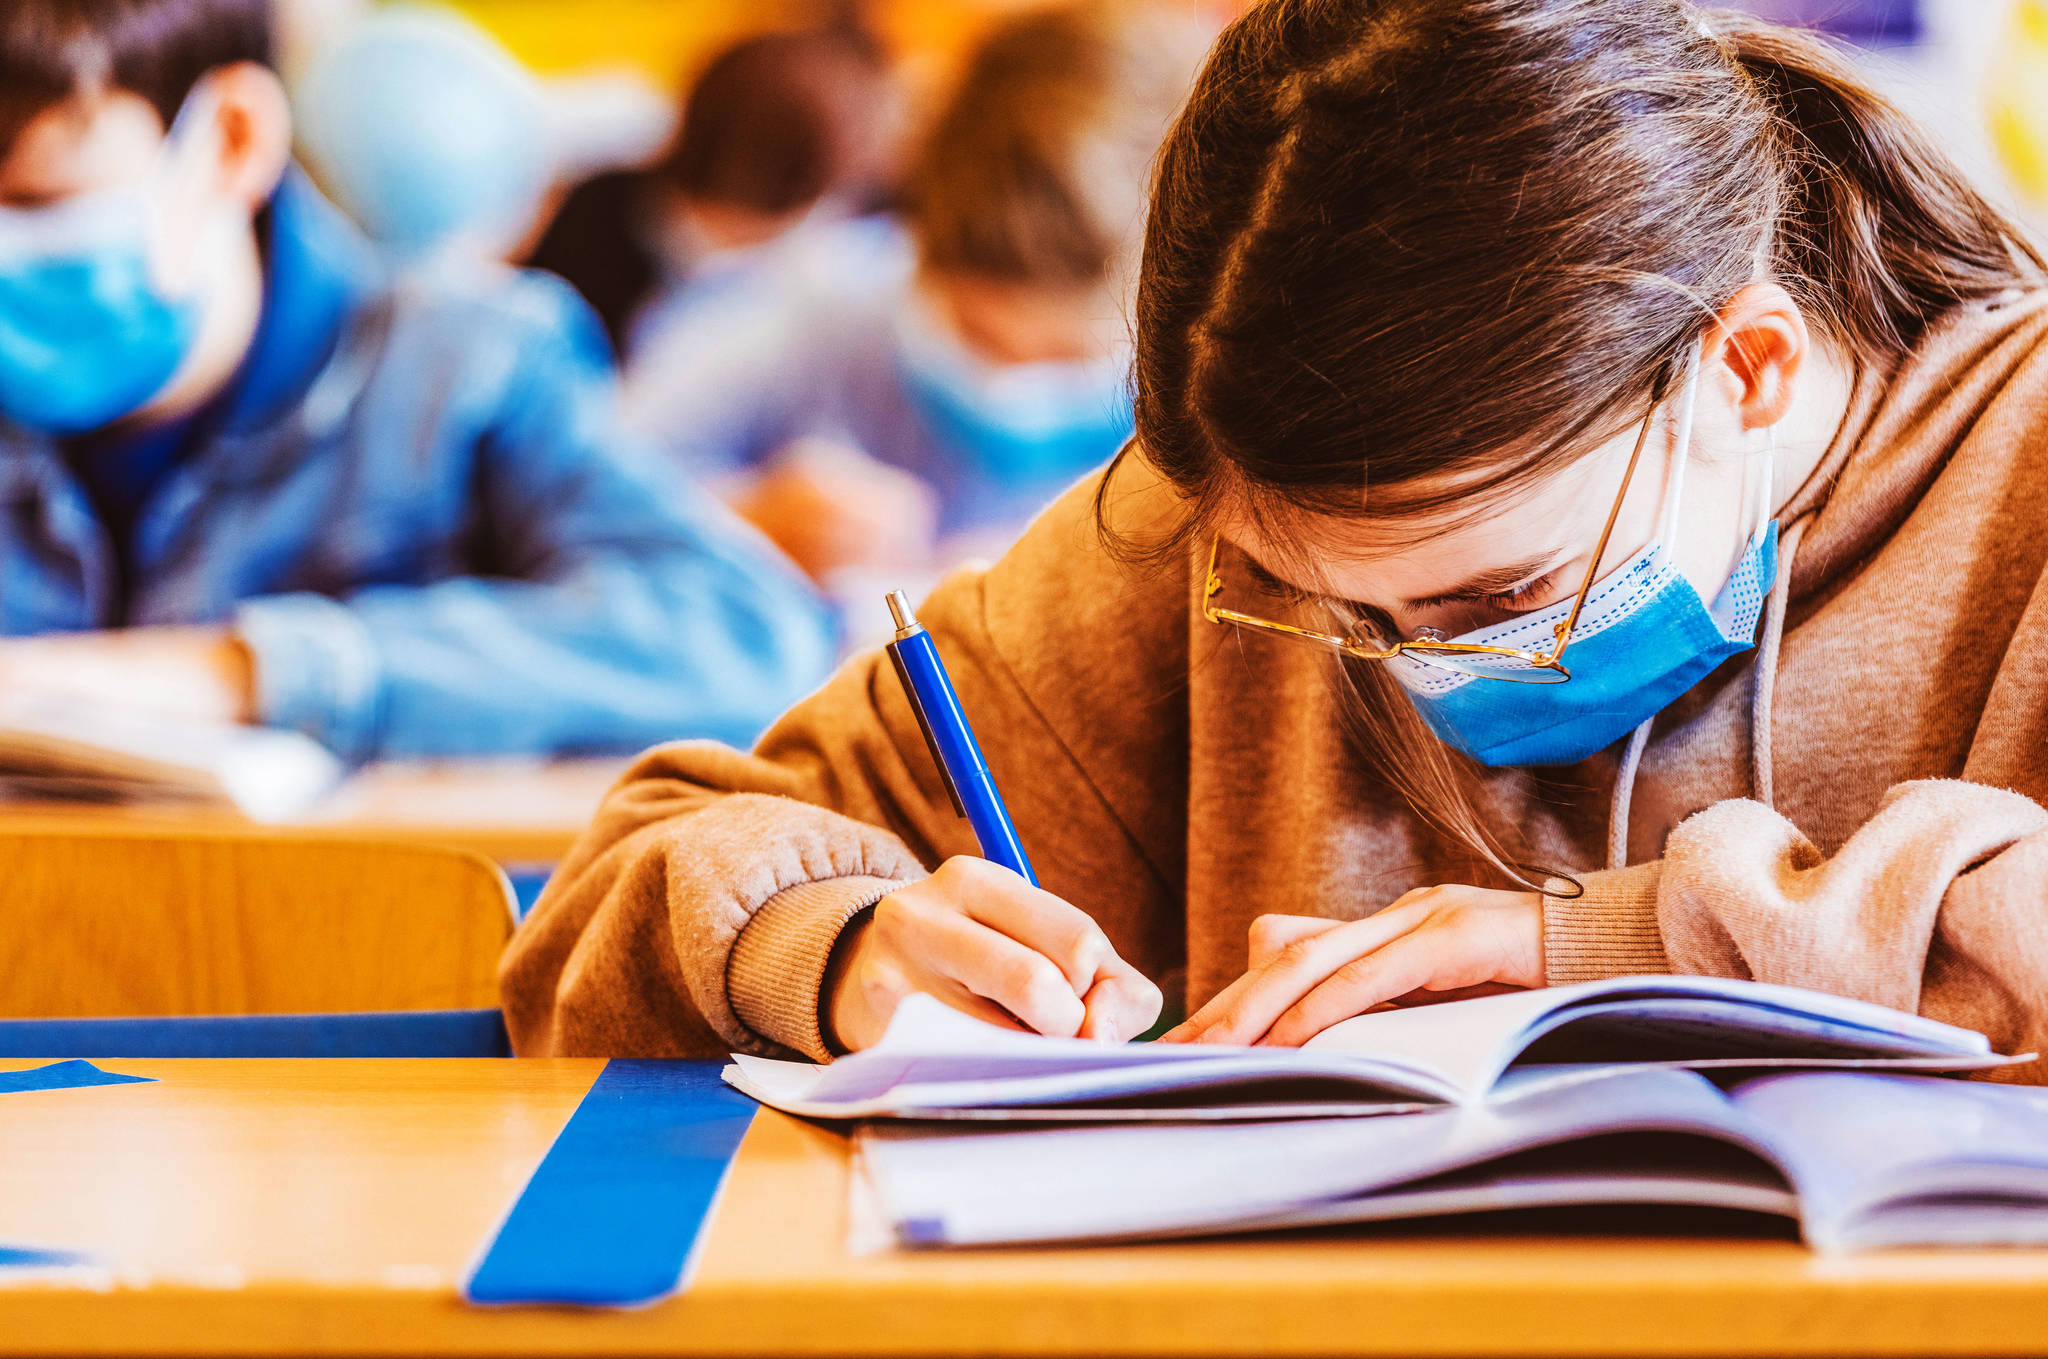 B.C. teachers are calling on the province to take a cautious approach, including a K–12 mask mandate to begin the 2021/22 school year. (File photo)